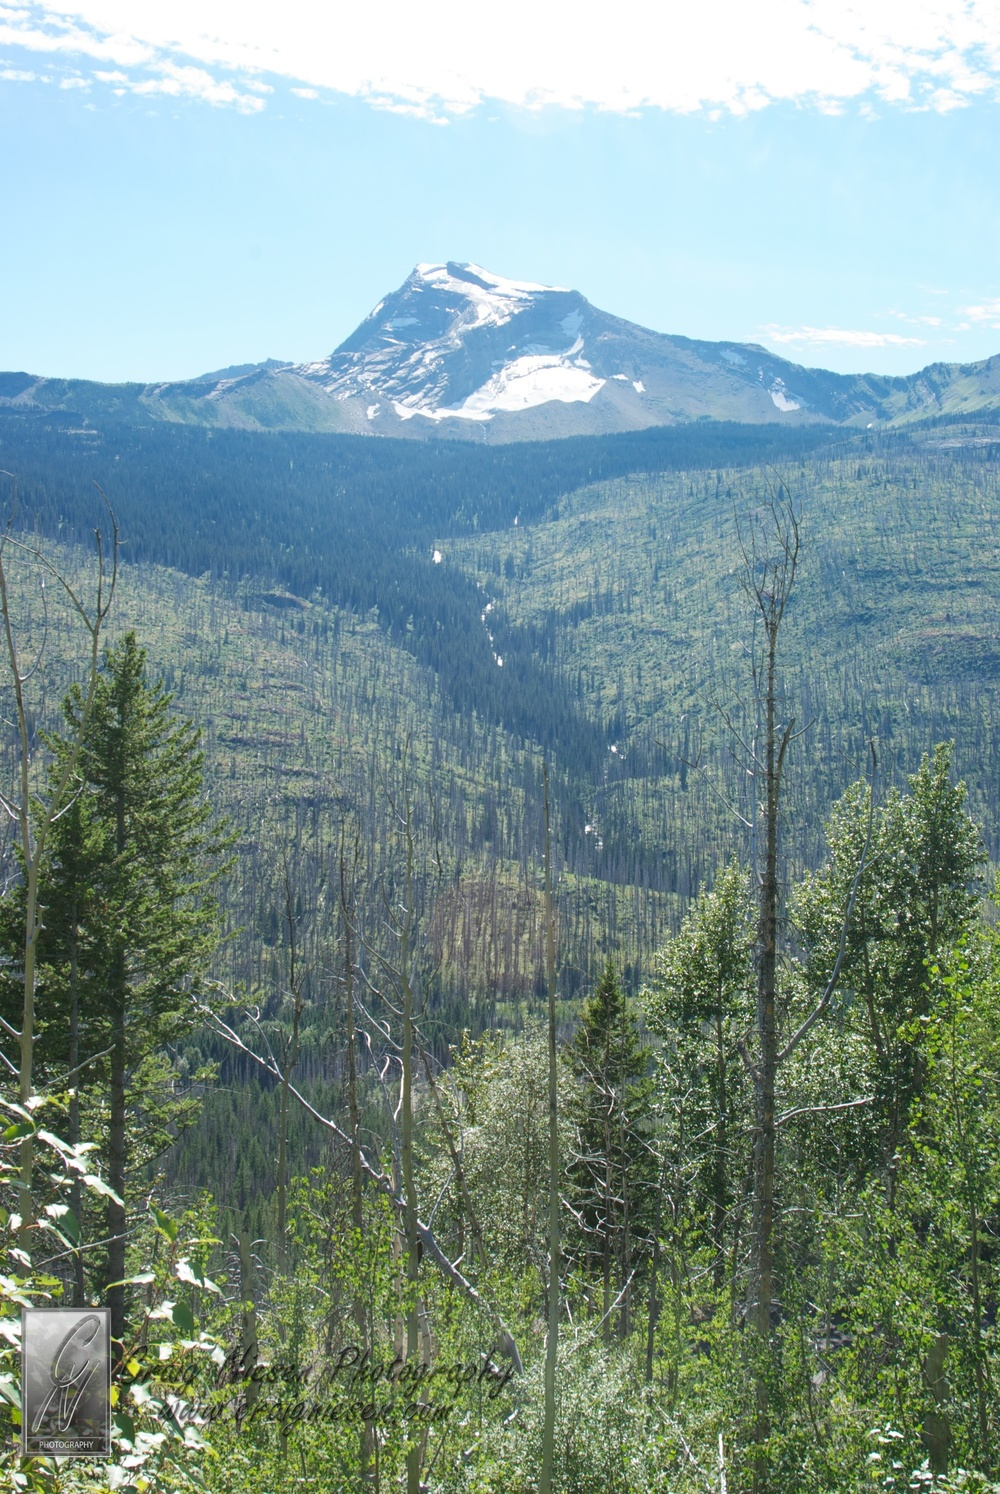 Heavens Peak and Results of Pine Beatles, Glacier National Park (Shelley)